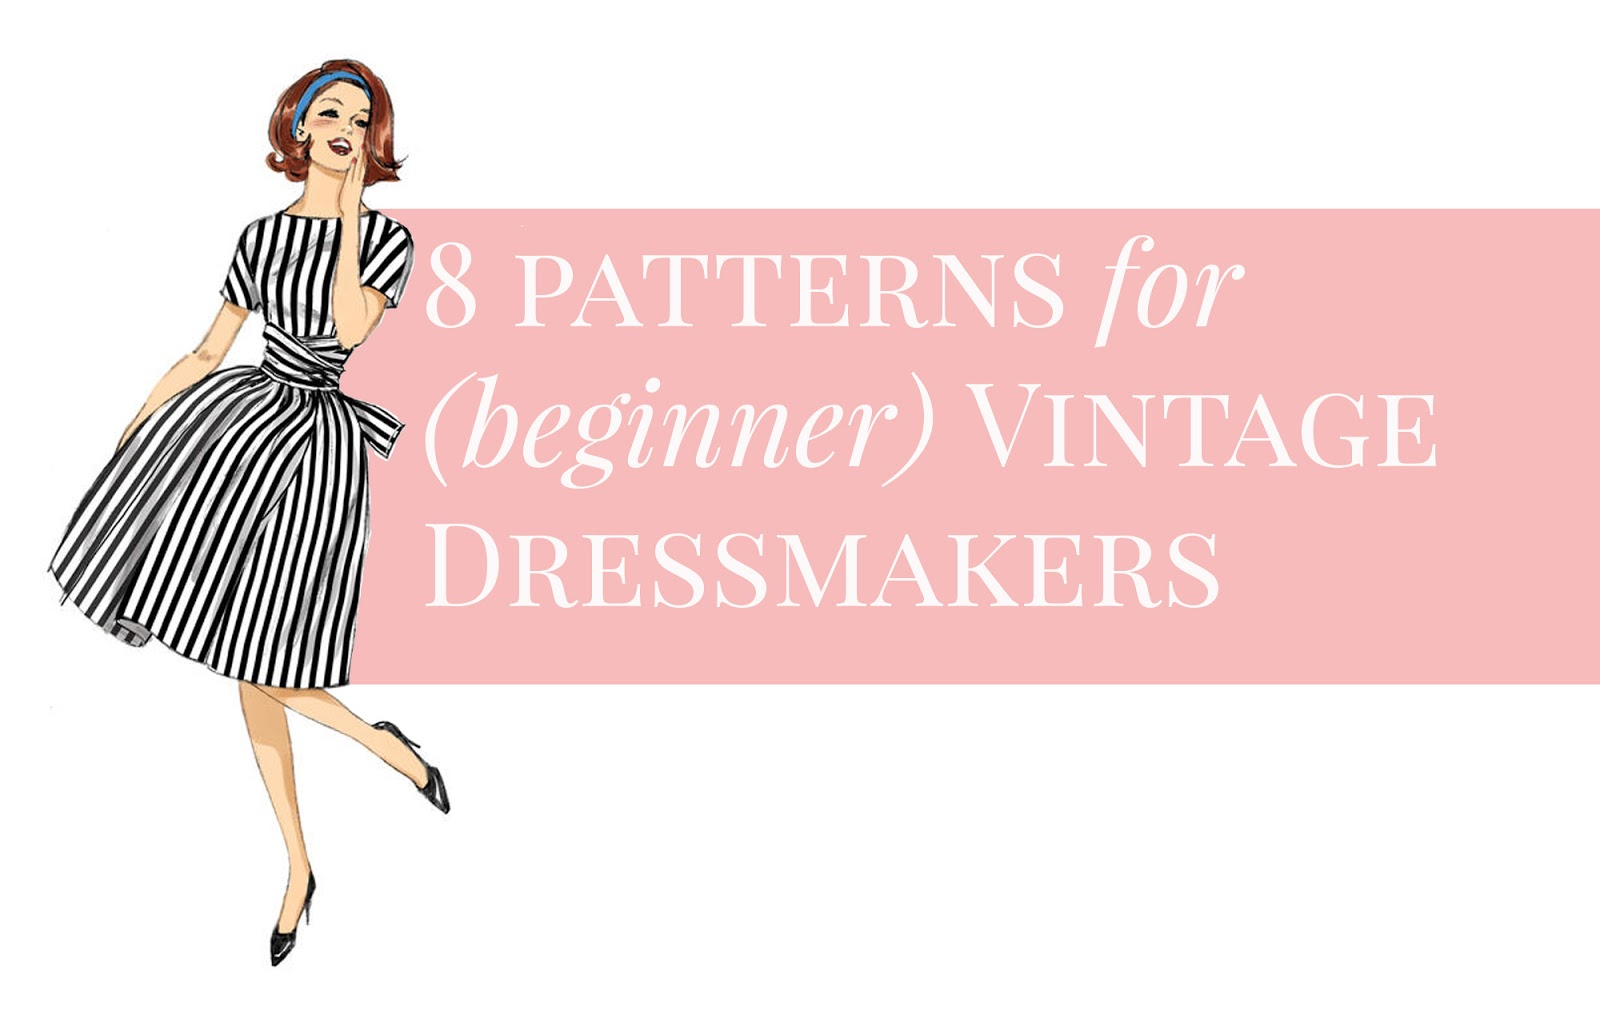 bcf4f532add7 While working on the round-up of my 2016 vintage garments, I started  thinking about getting started in vintage sewing. Two of my first ever  makes were ...